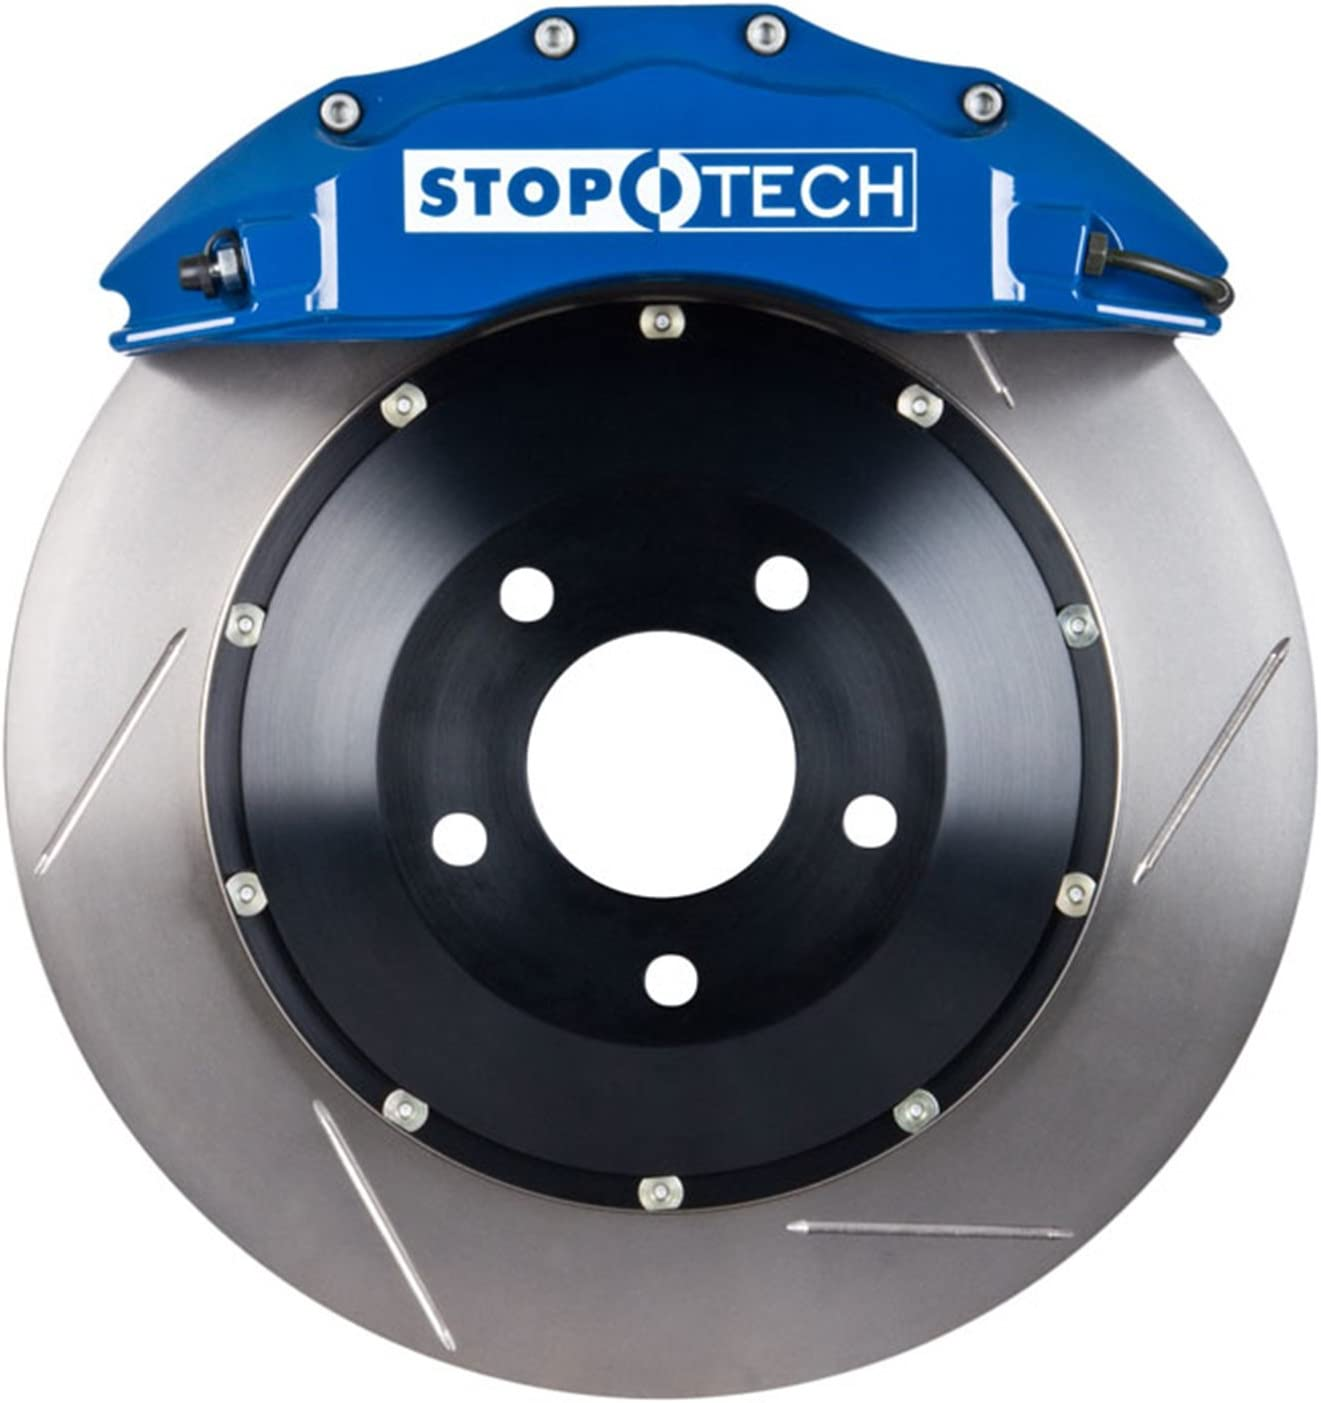 StopTech 83.158.6700.21 Big Brake Rotor Front 1 2 Long-awaited Manufacturer direct delivery Piece Kit